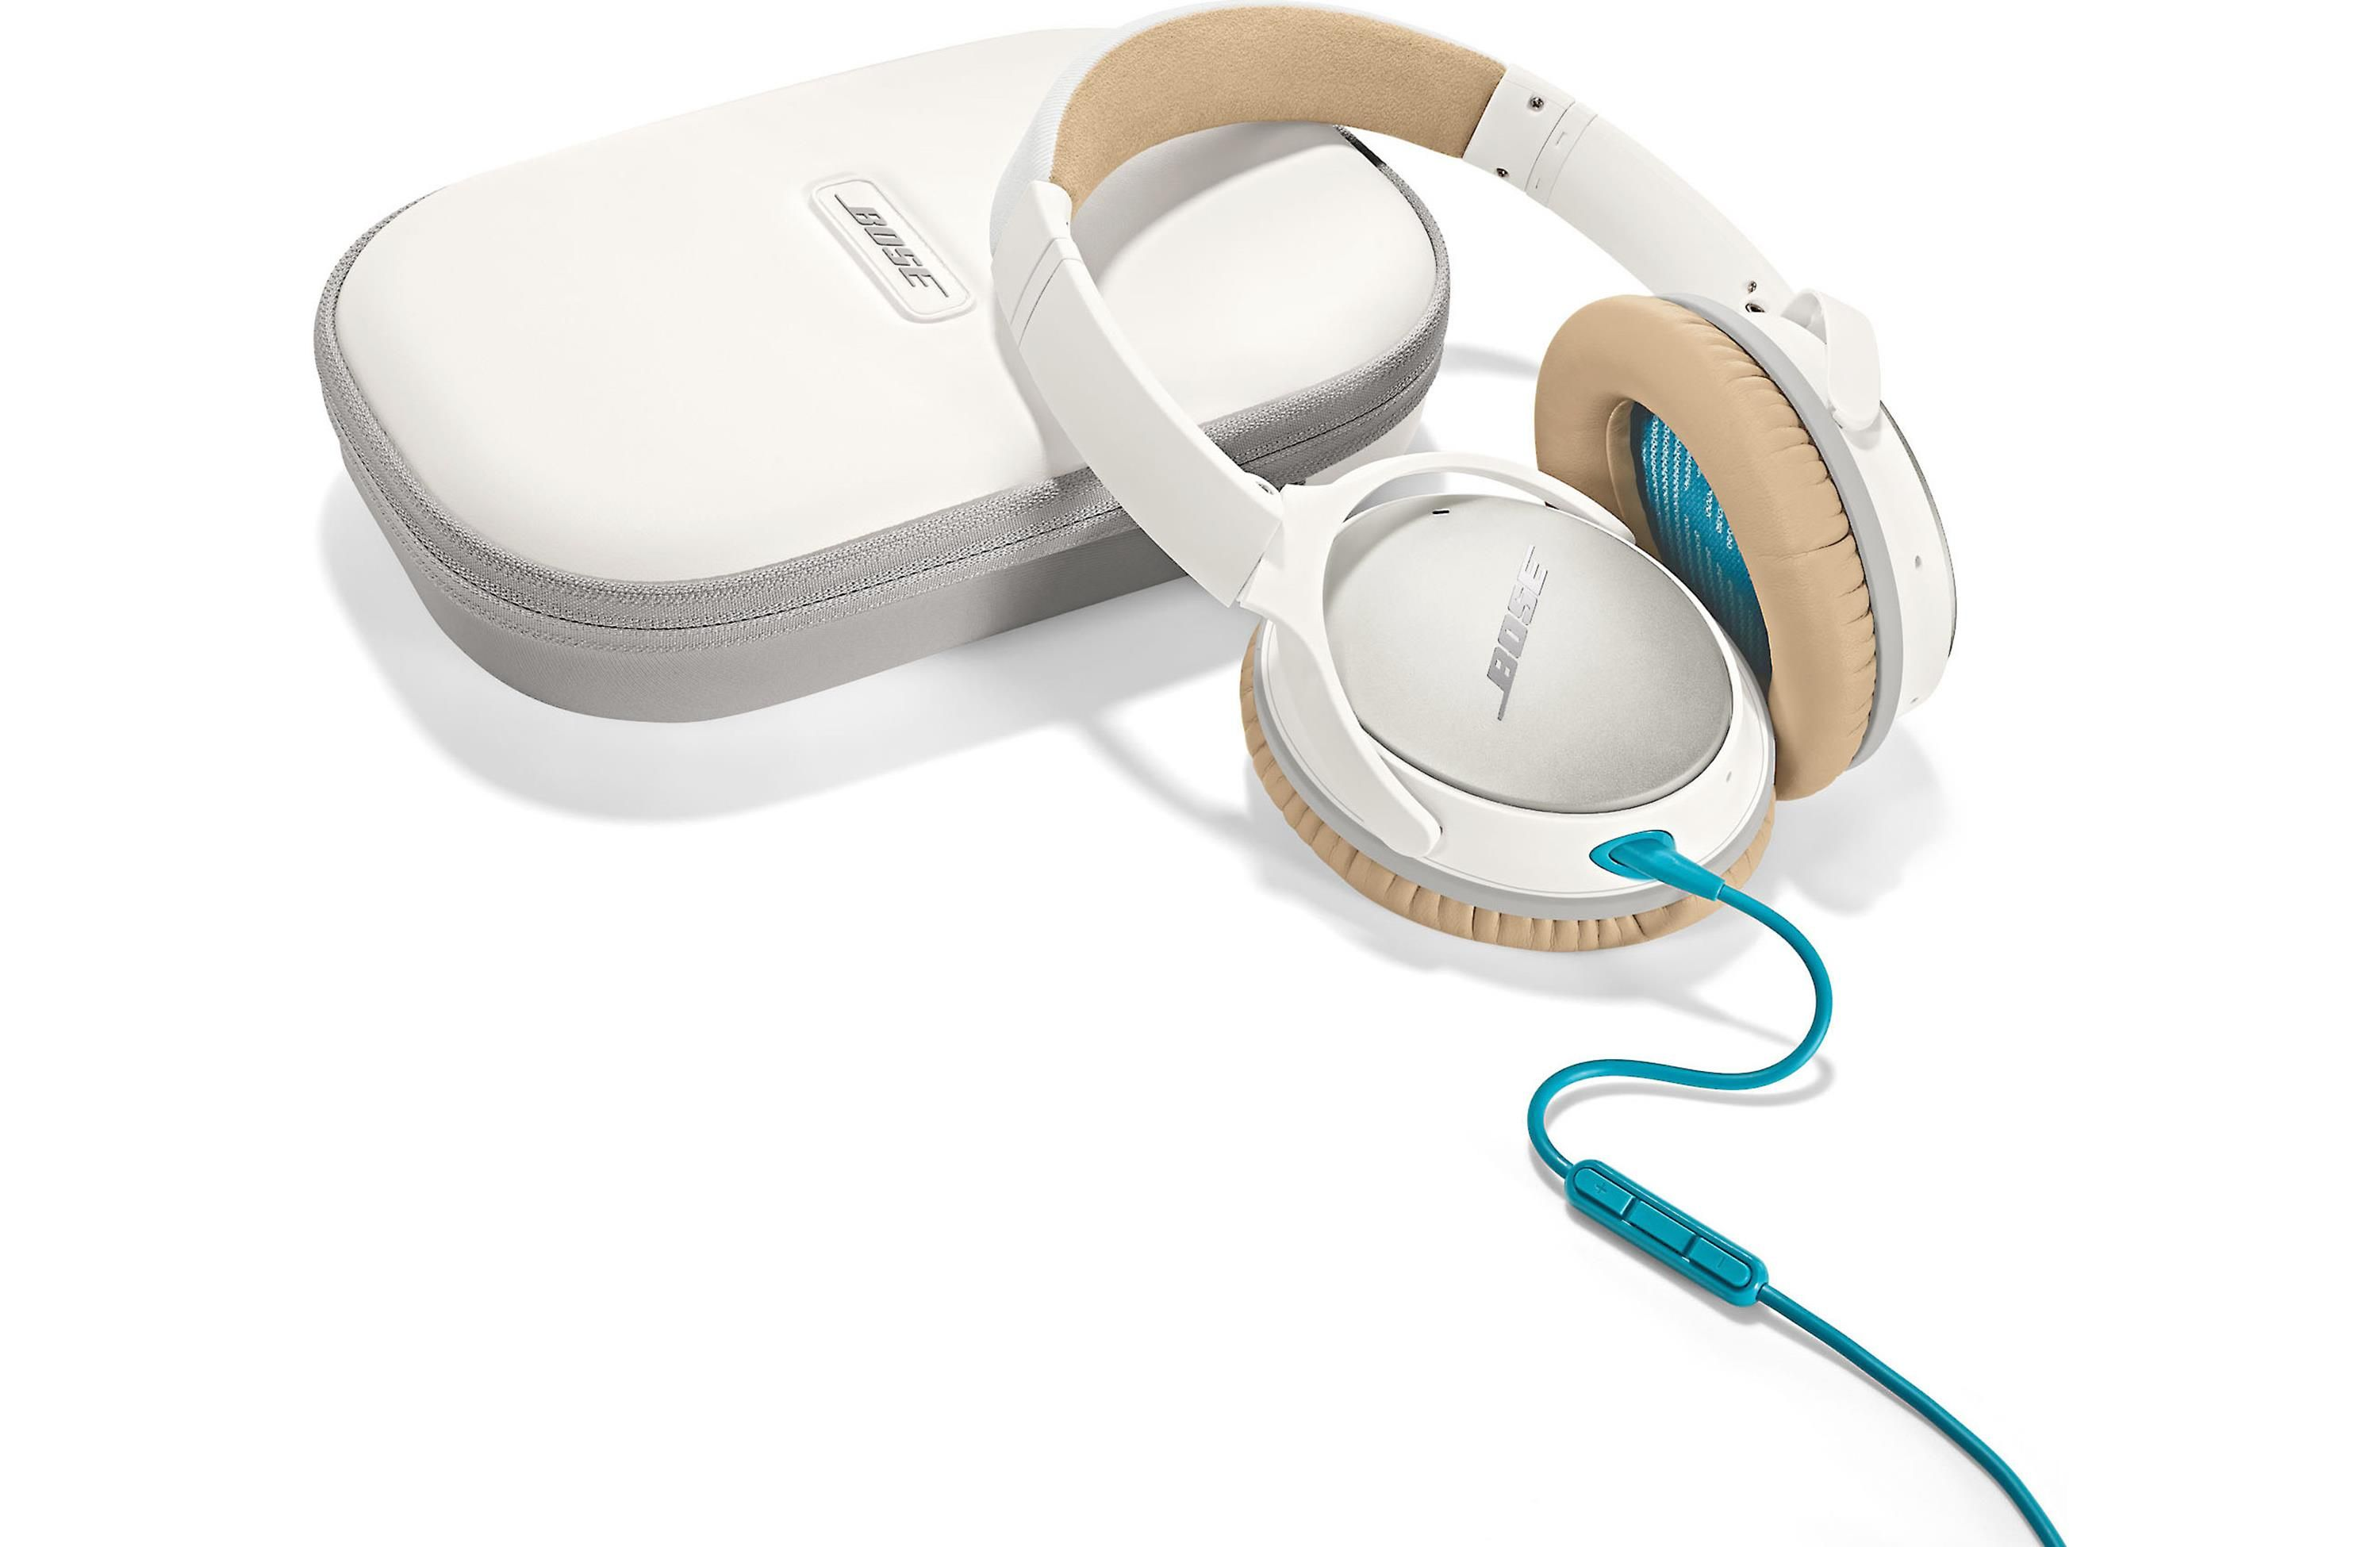 Bose Quietcomfort 25 Acoustic Noise Cancelling Headphones For Apple Devices White At Crutchfield Noise Cancelling Headphones Headphones For Sale Headphones